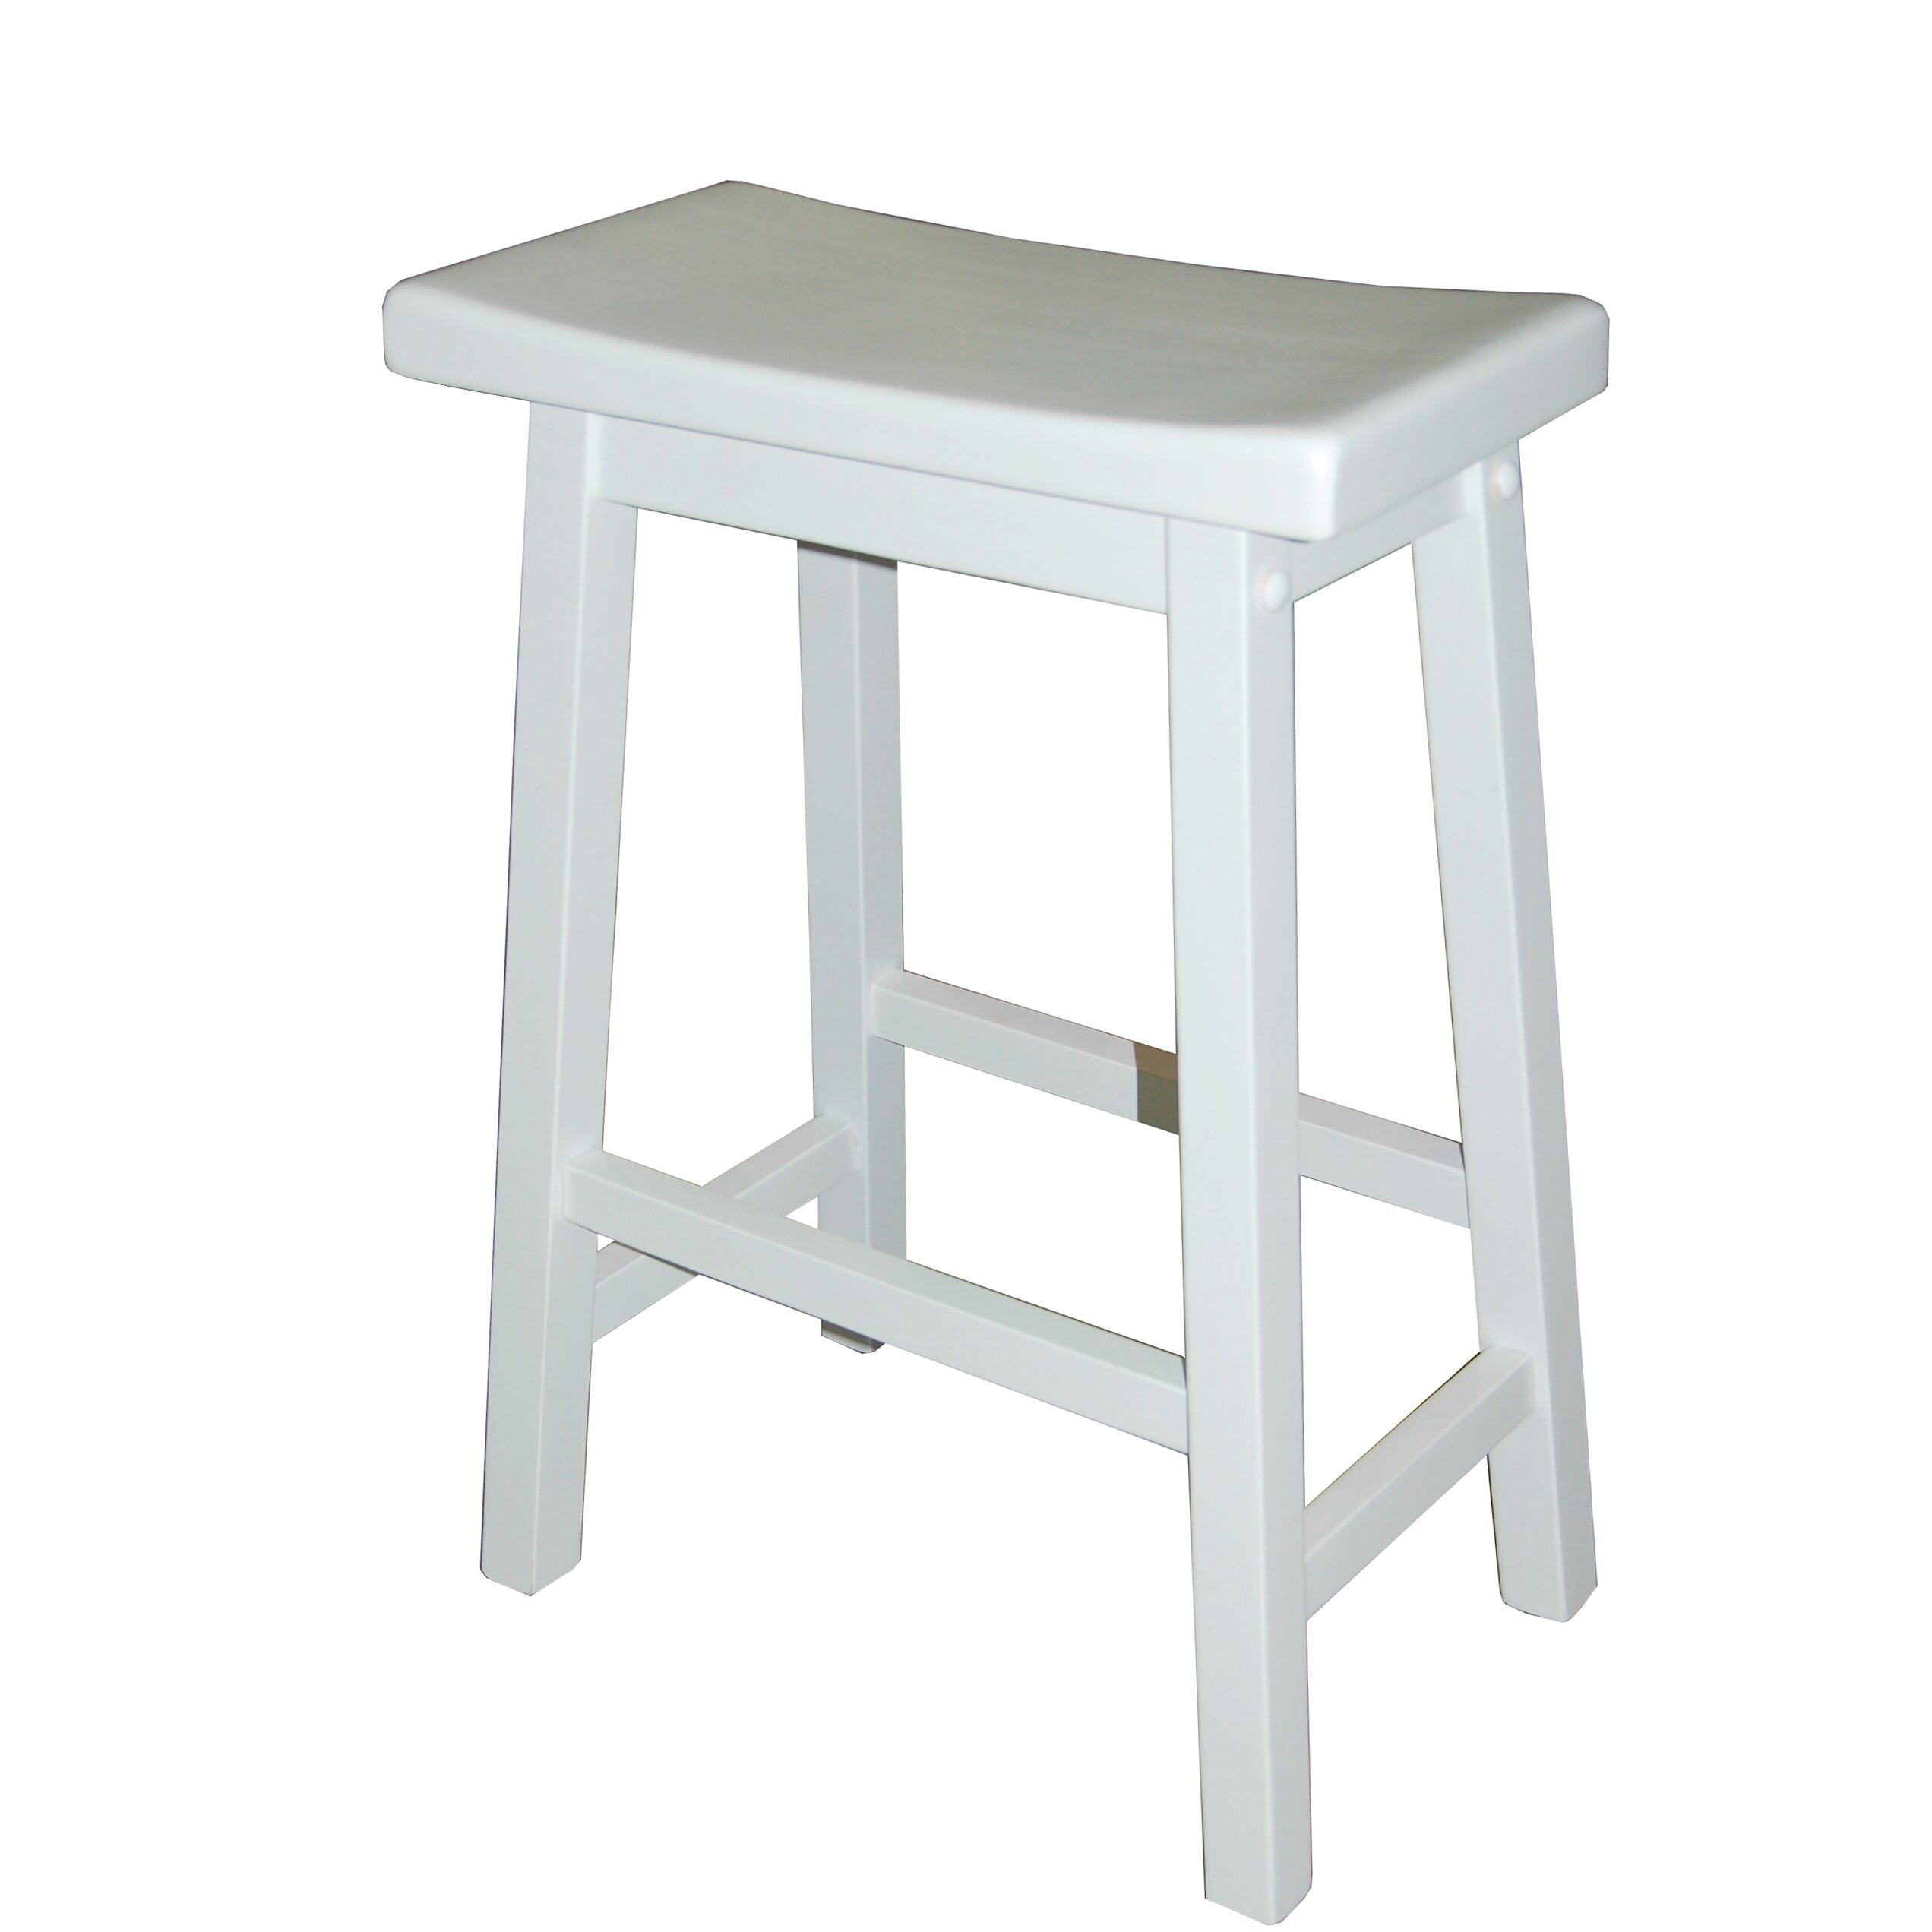 Swell Stool Dining Set Bar Stools You Ll Love Wayfair Stool Alphanode Cool Chair Designs And Ideas Alphanodeonline